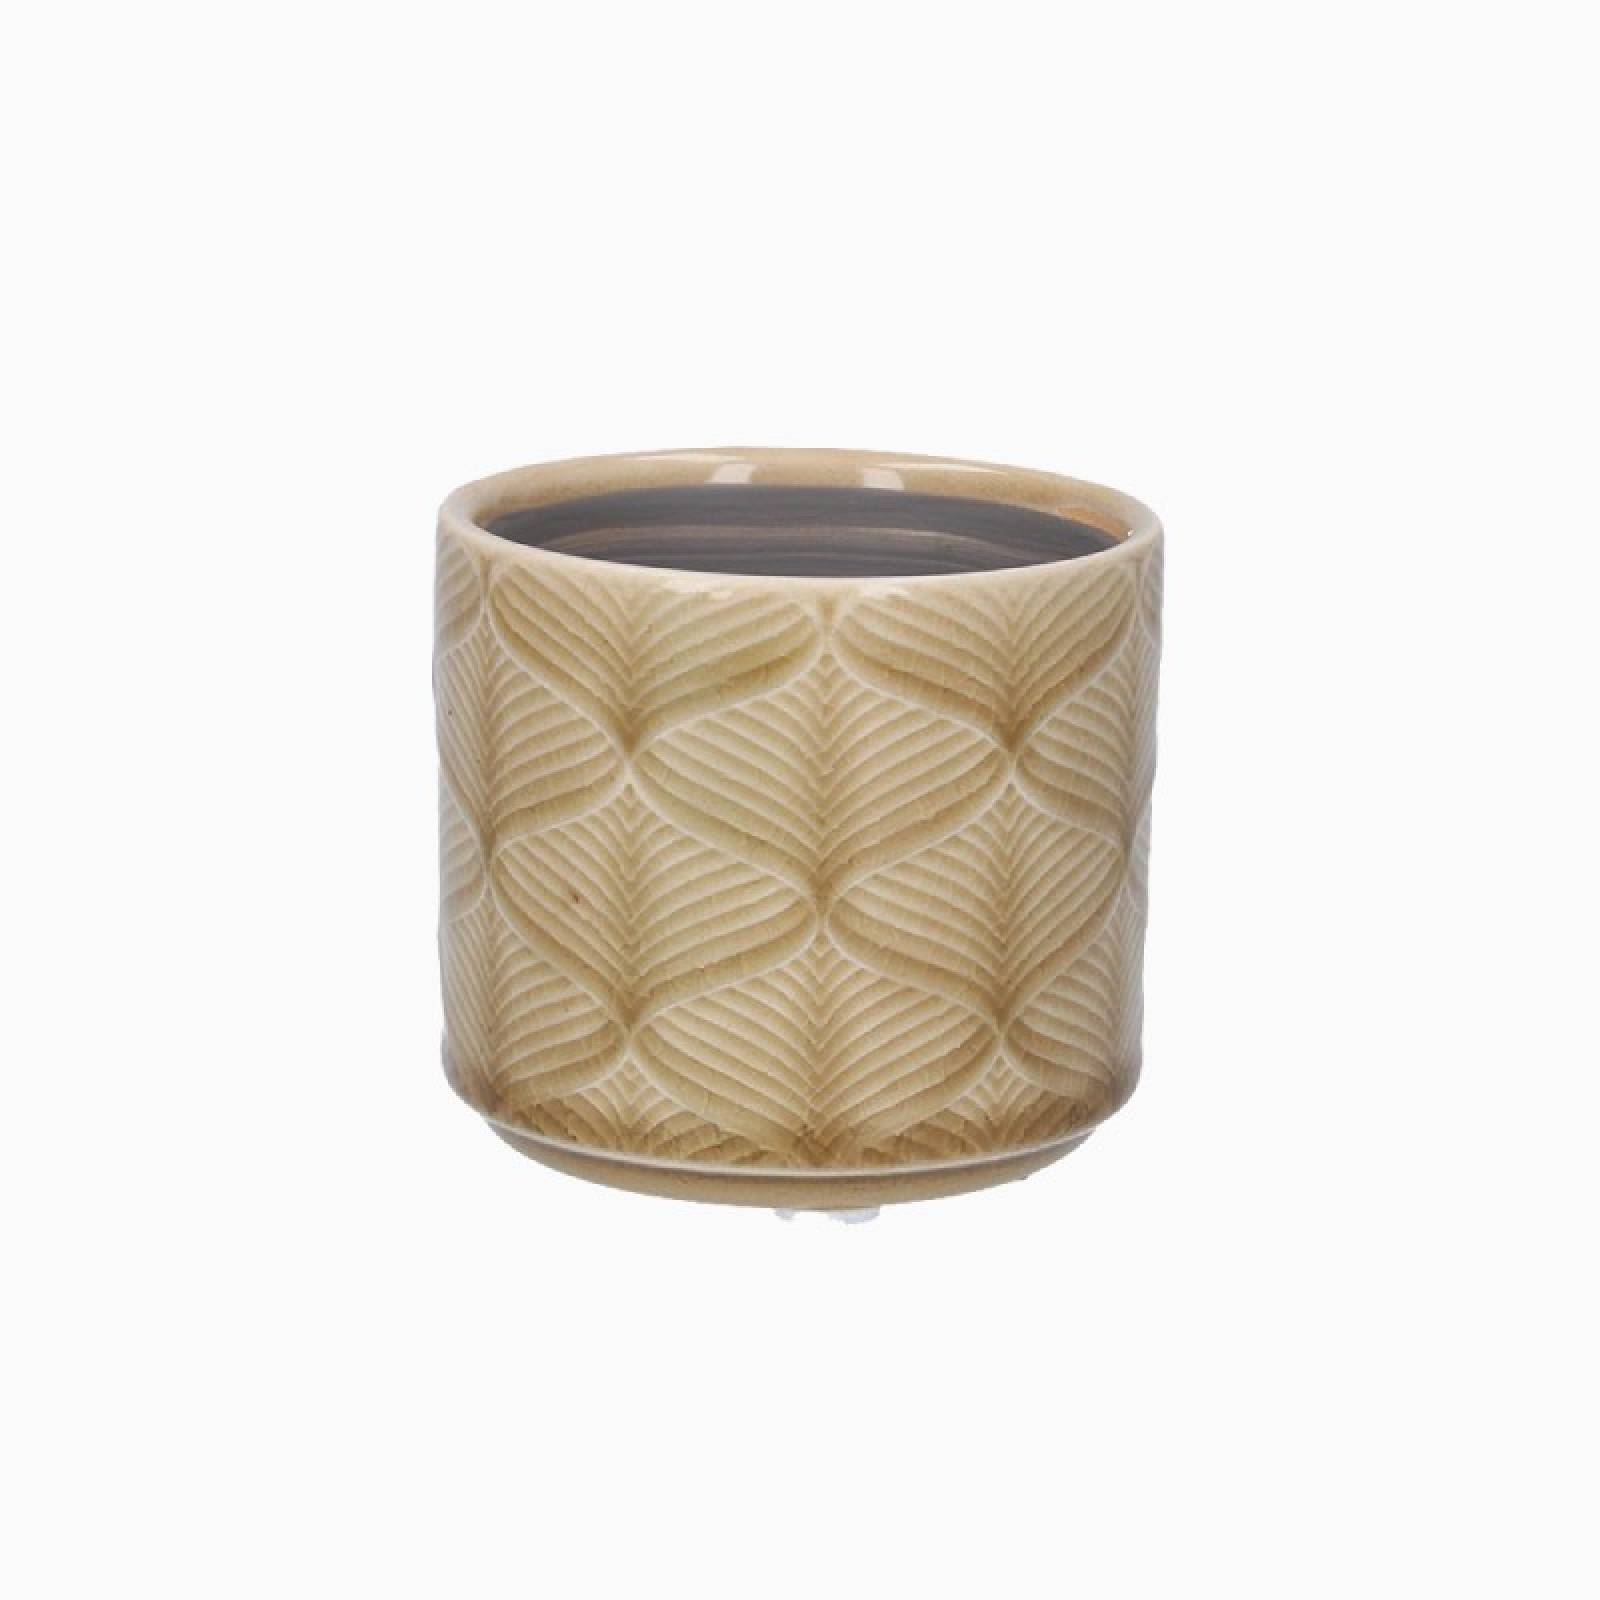 Mini Wavy Ceramic Flower Pot Cover In Mustard thumbnails